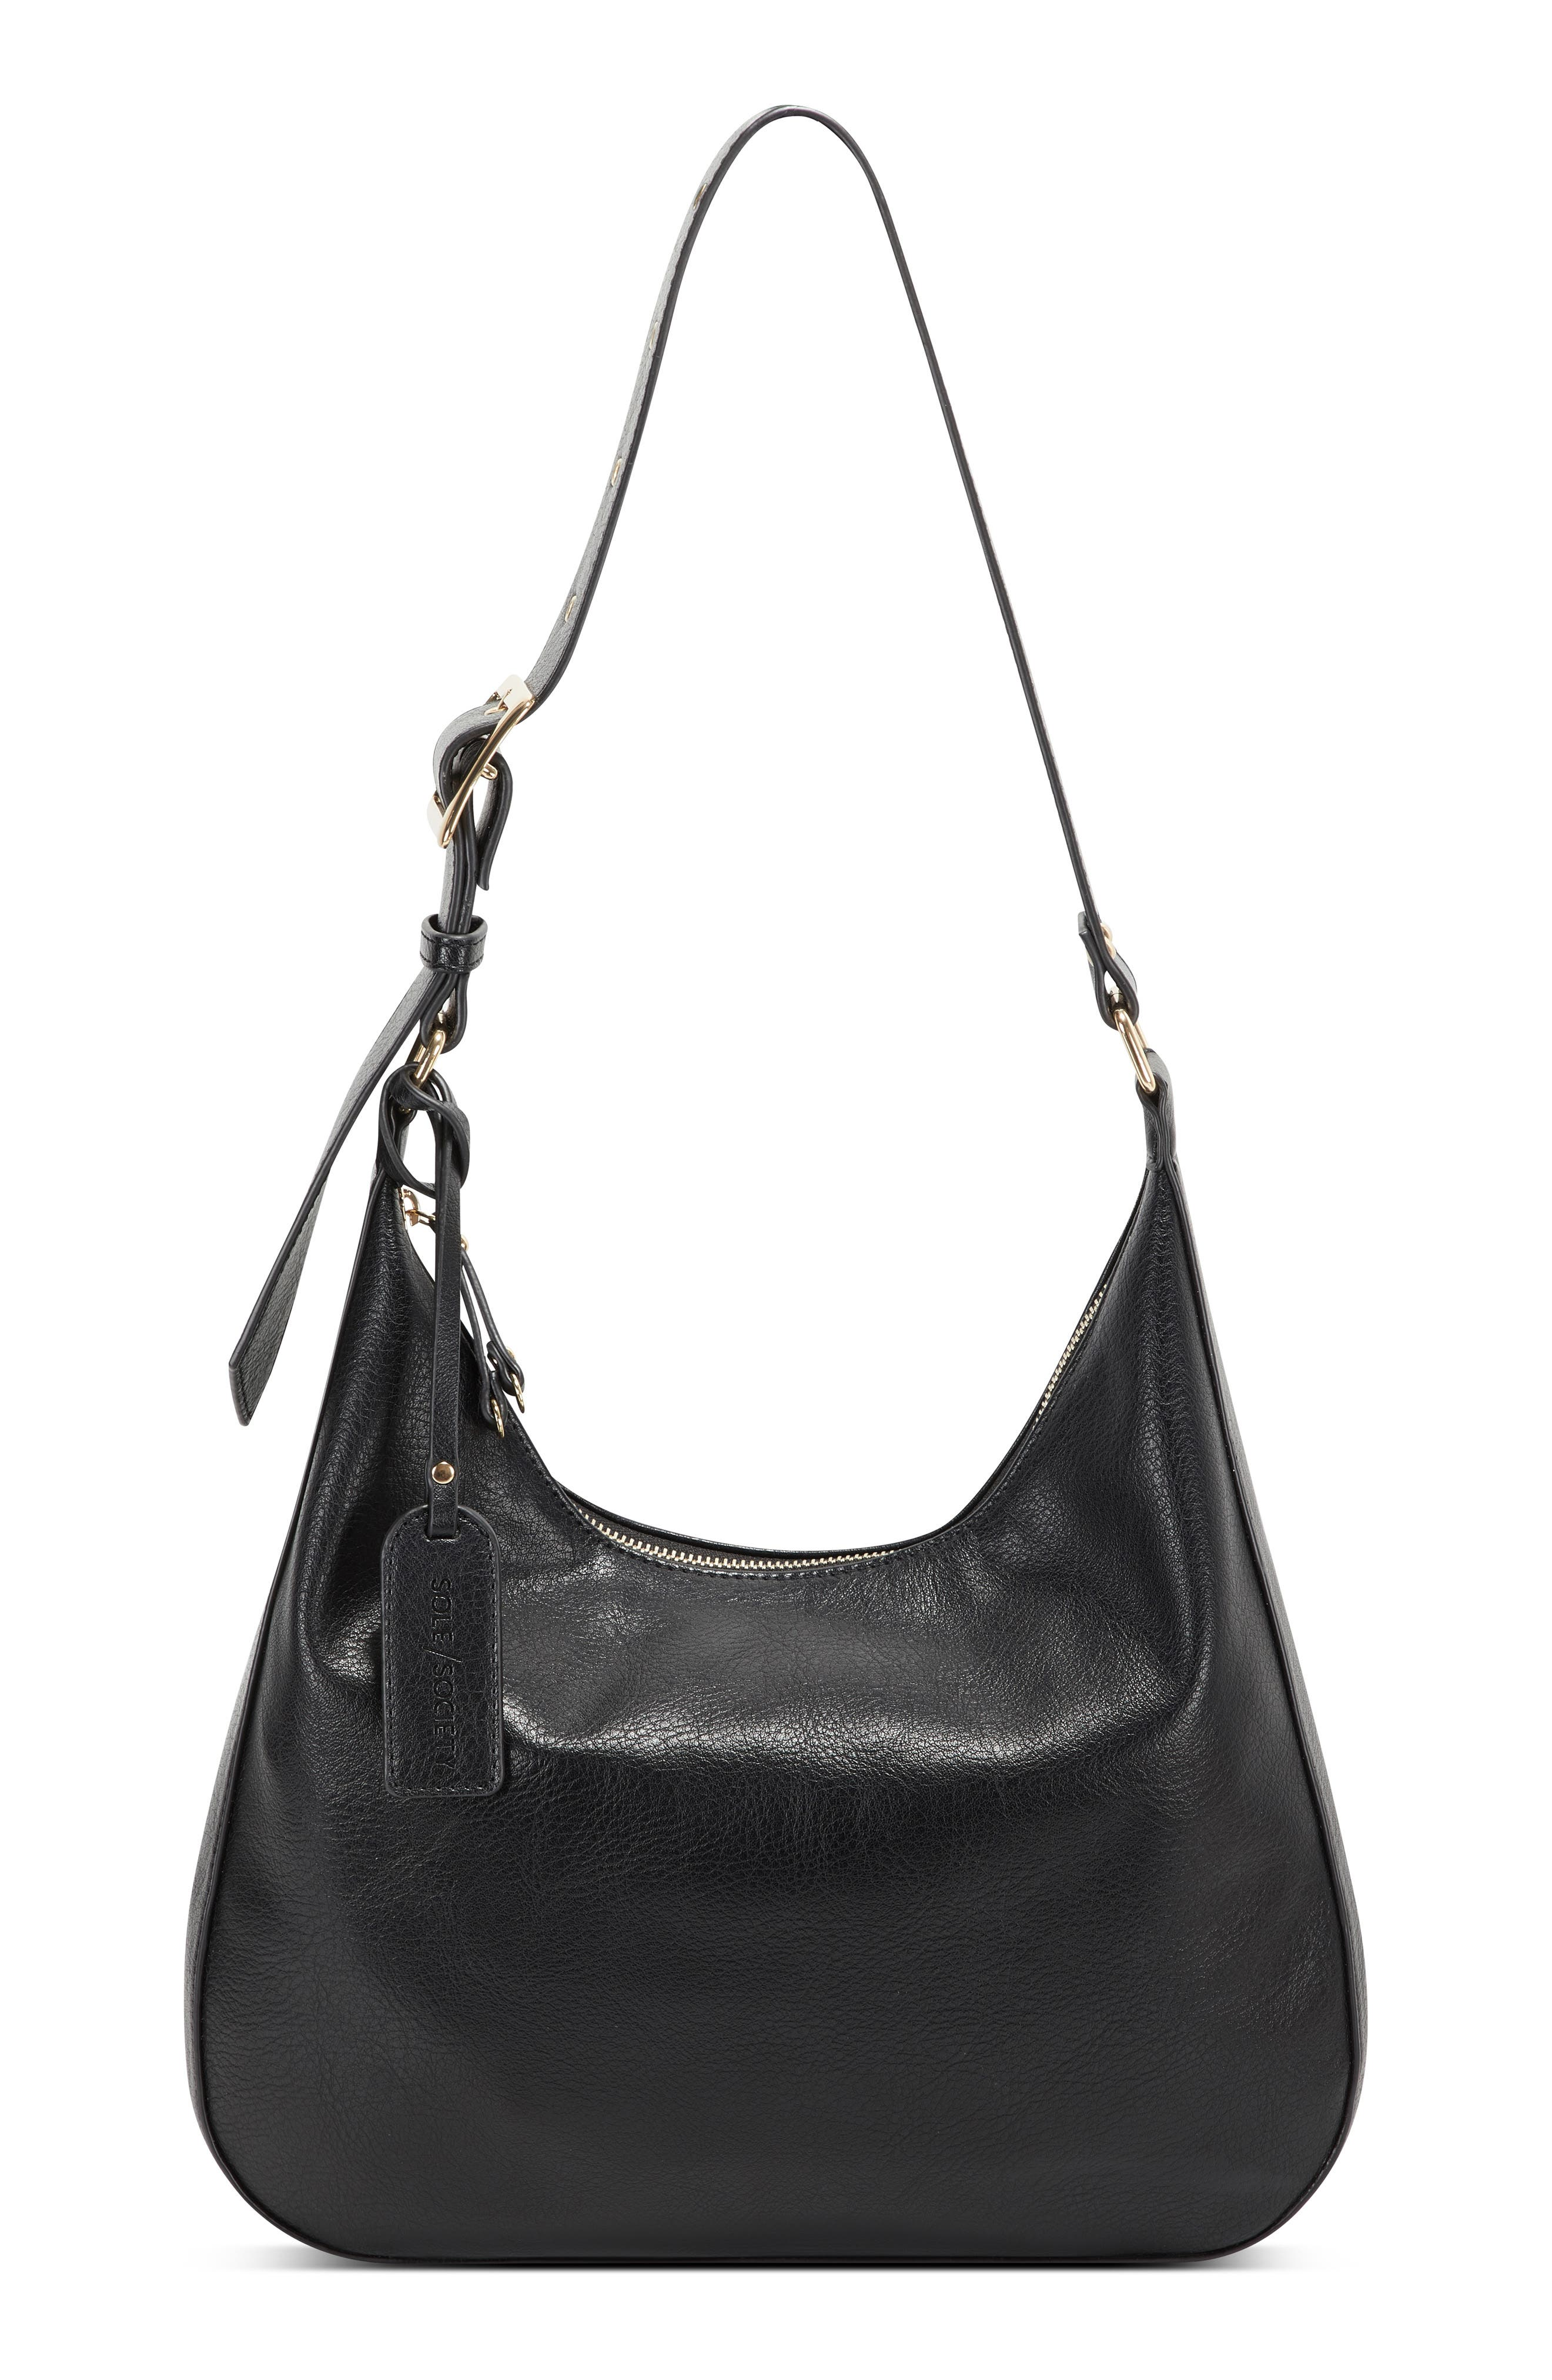 Image of Sole Society Palvo Faux Leather Hobo Bag